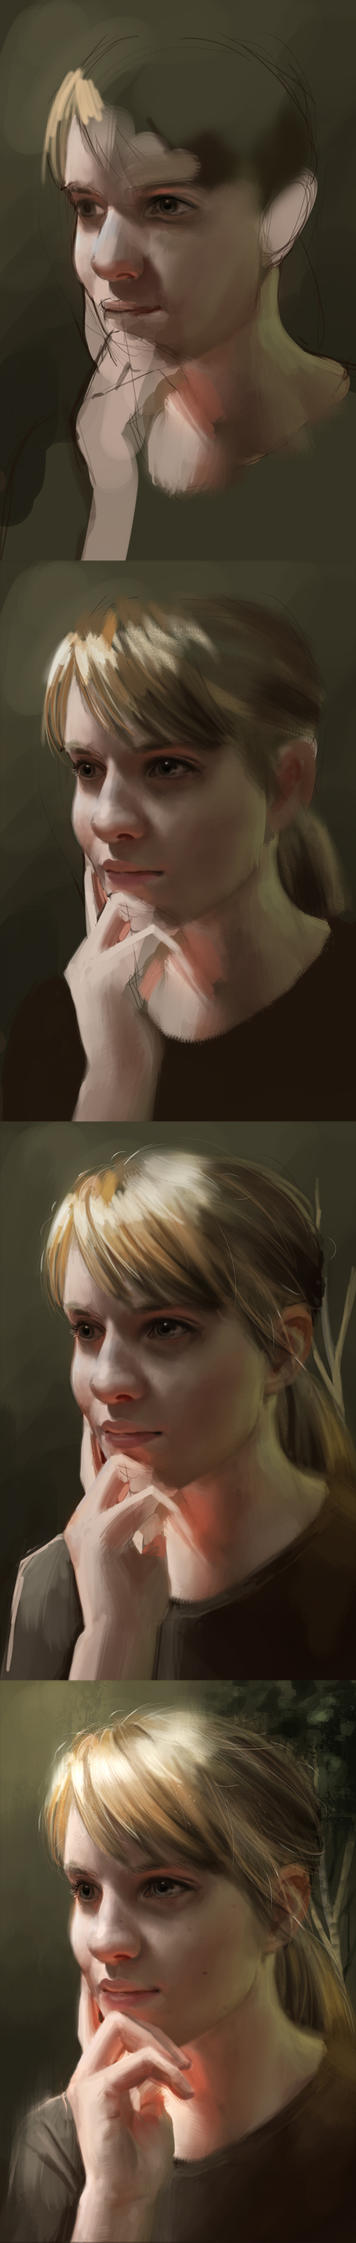 self portrait process by Detkef